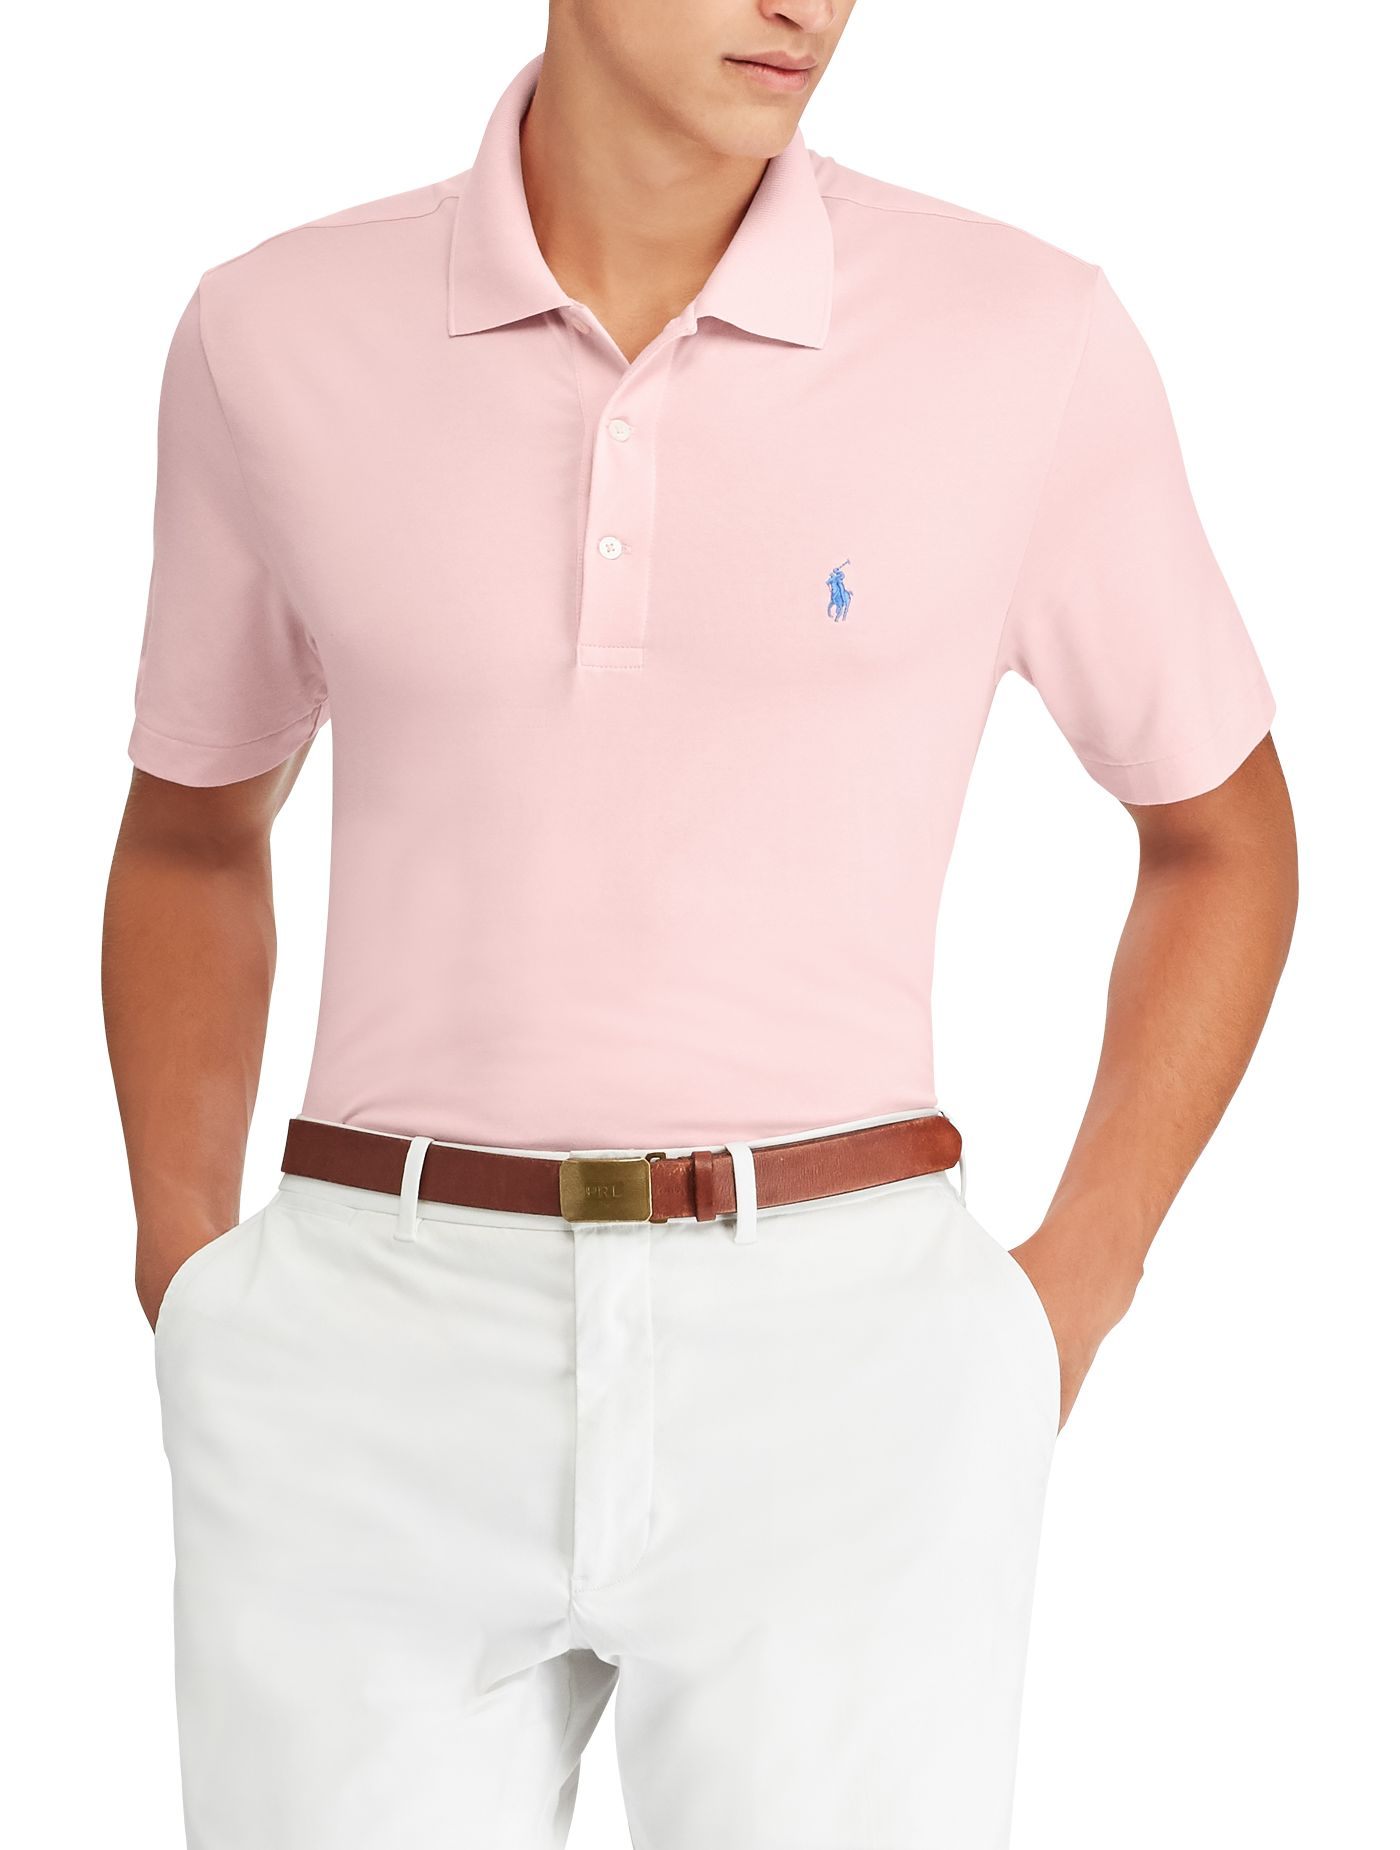 Polo Golf Men's Solid Performance Lisle Golf Polo